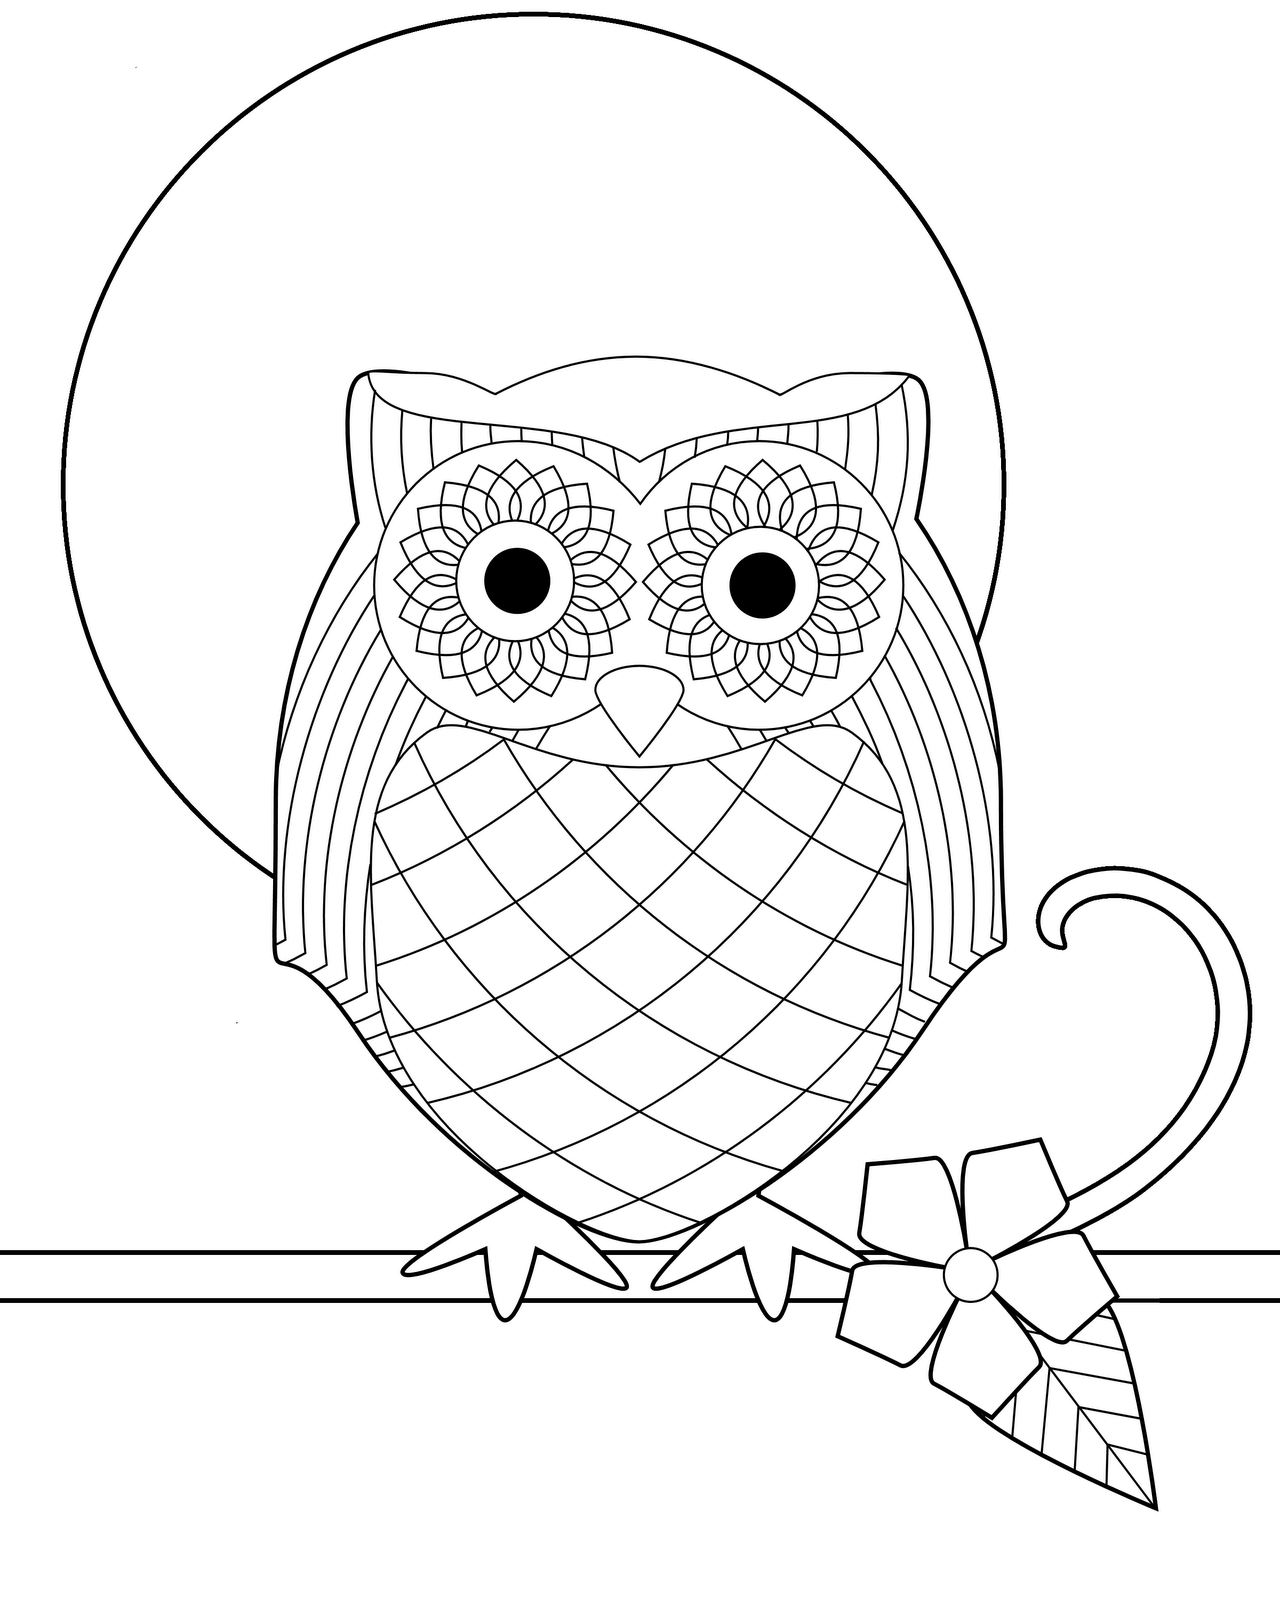 graphic regarding Owl Printable named Absolutely free Printable Owl Coloring Internet pages For Children